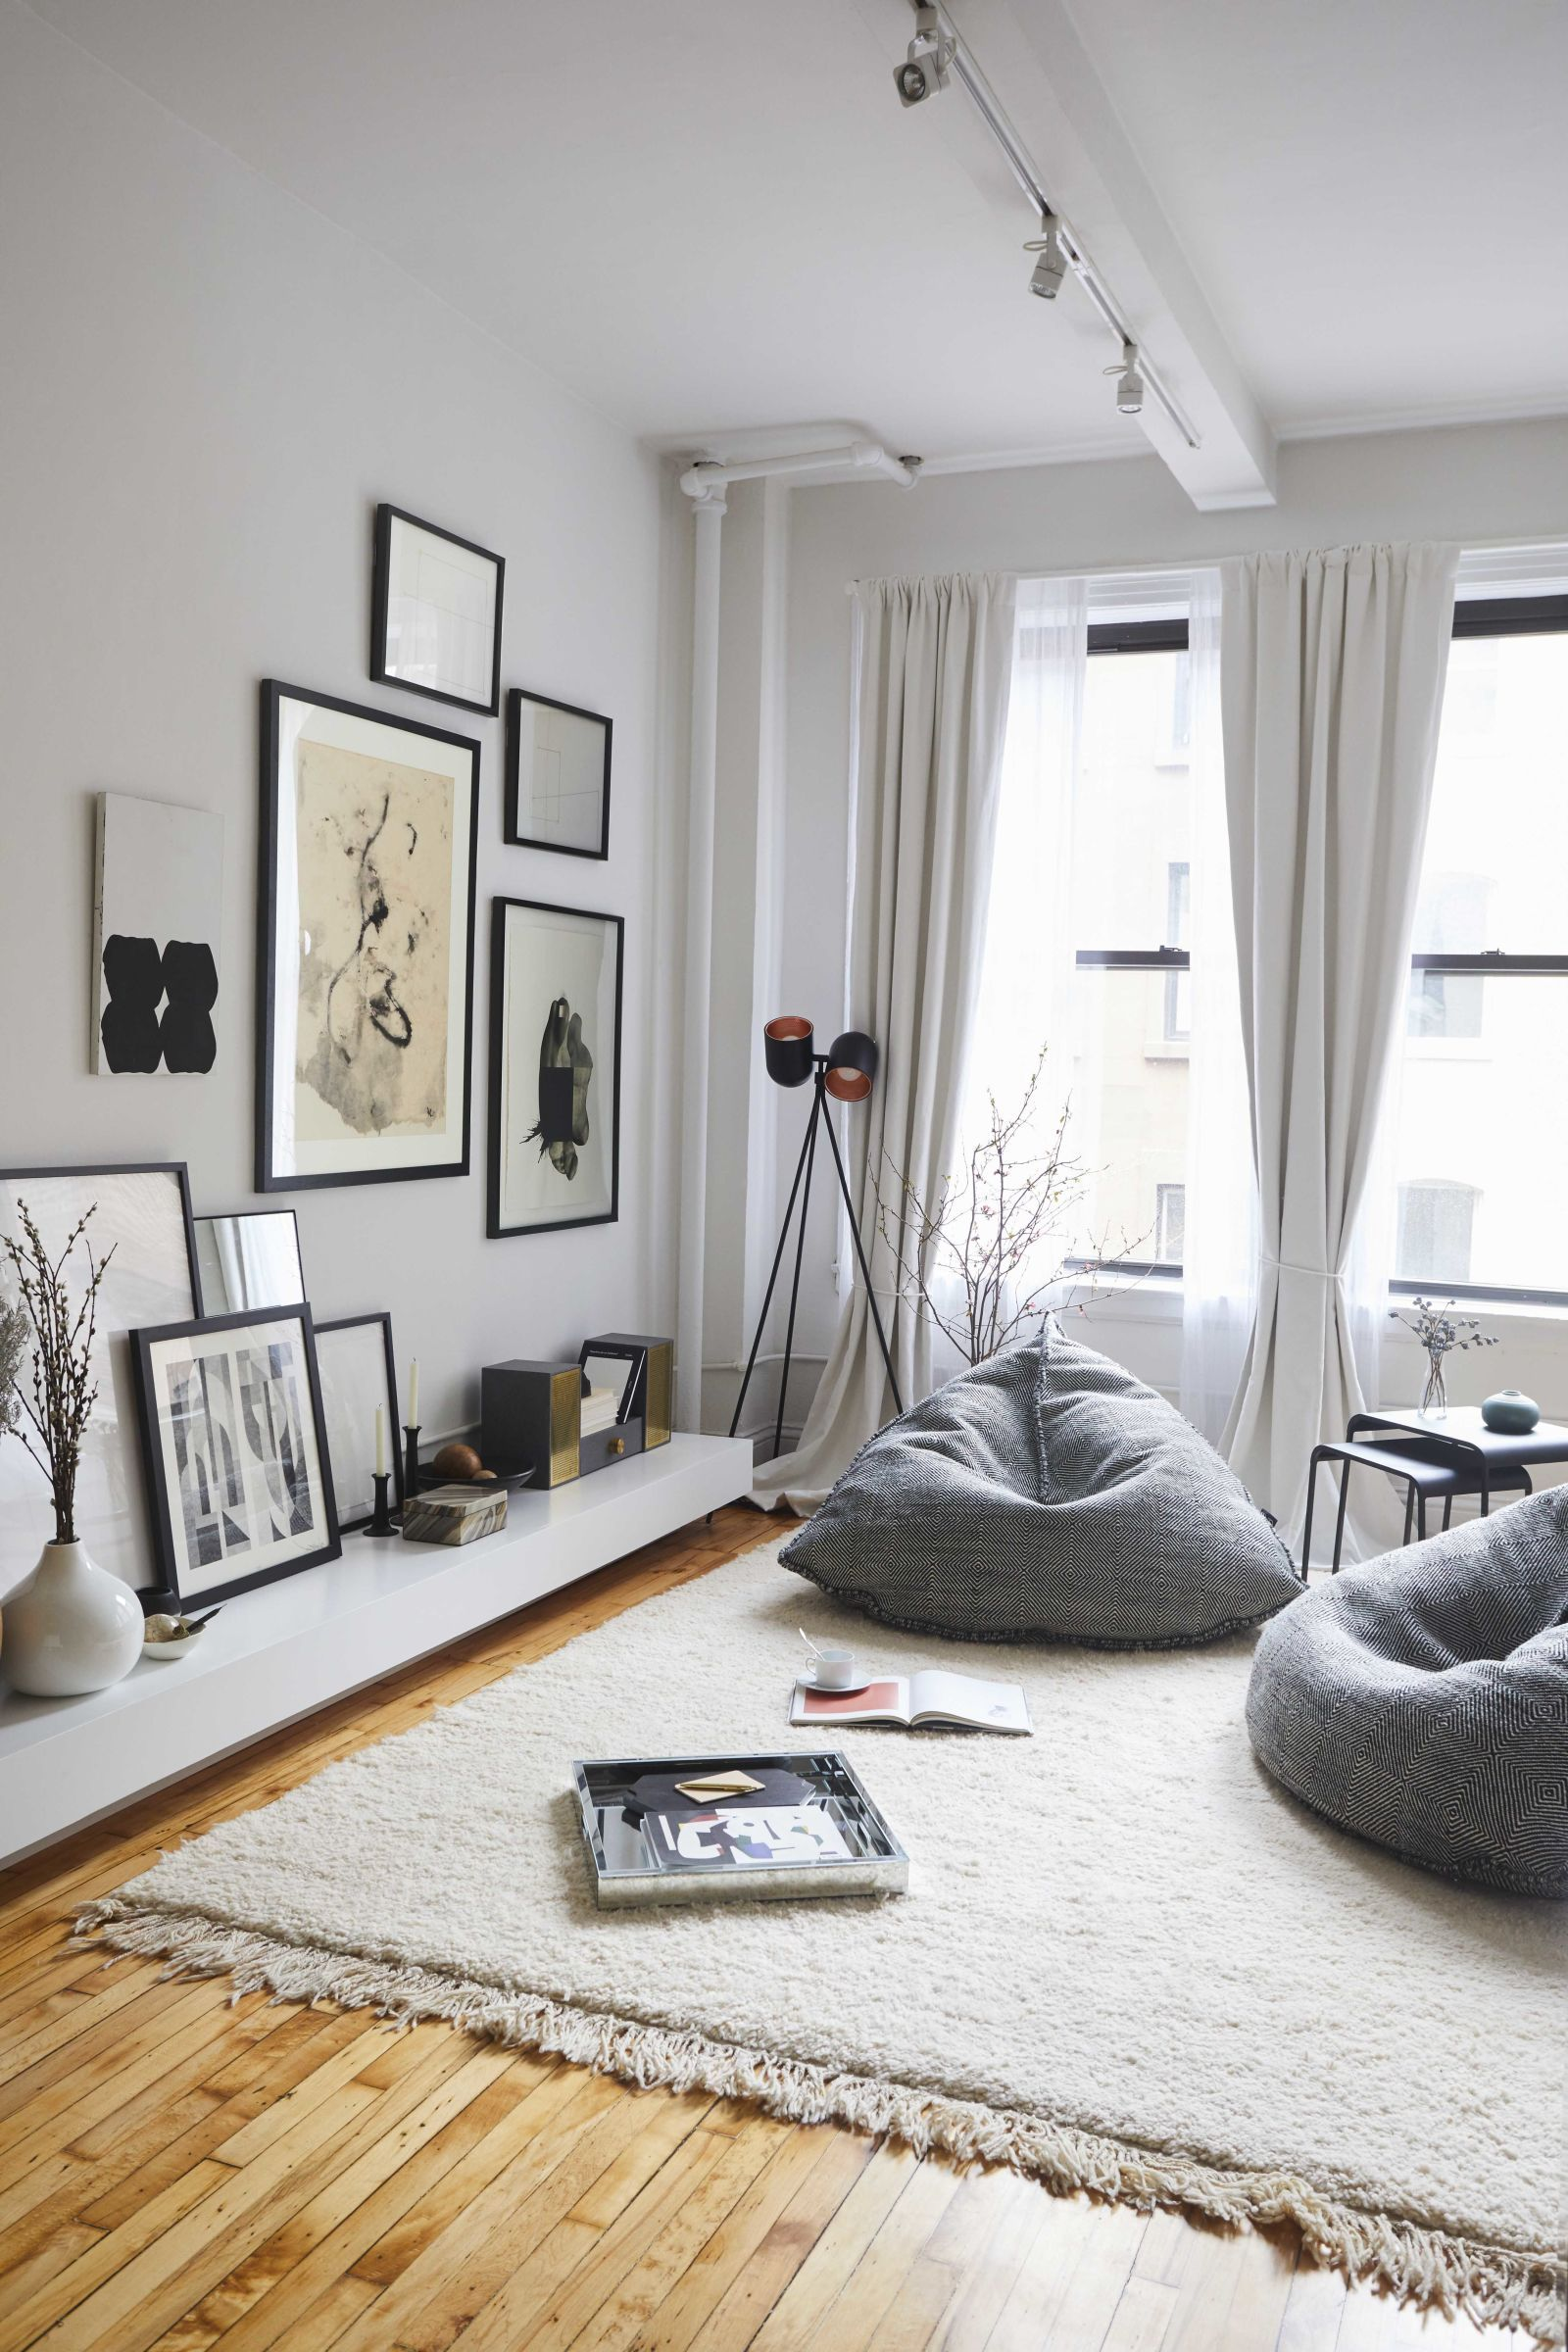 Bean Bag Living Room This Couple 39s Insanely Chic Apartment Is Also Their